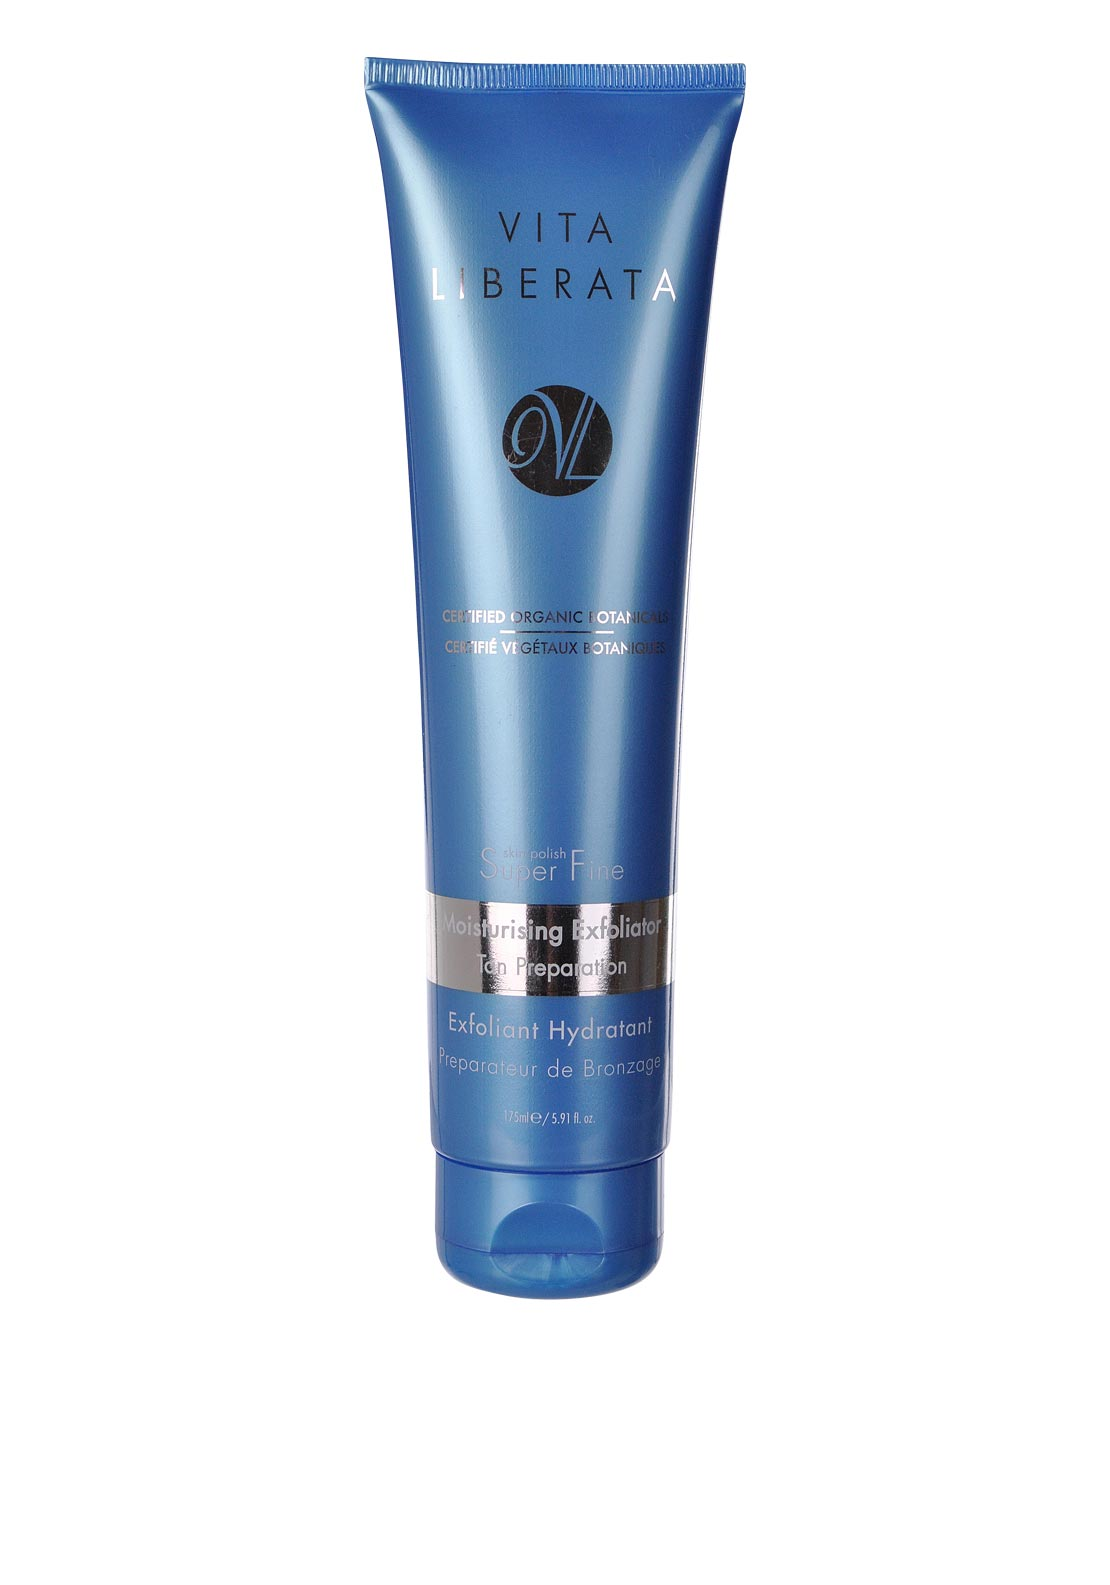 Vita Liberata Super Fine Moisturising Exfoliator for Tan Preparation, 175ml